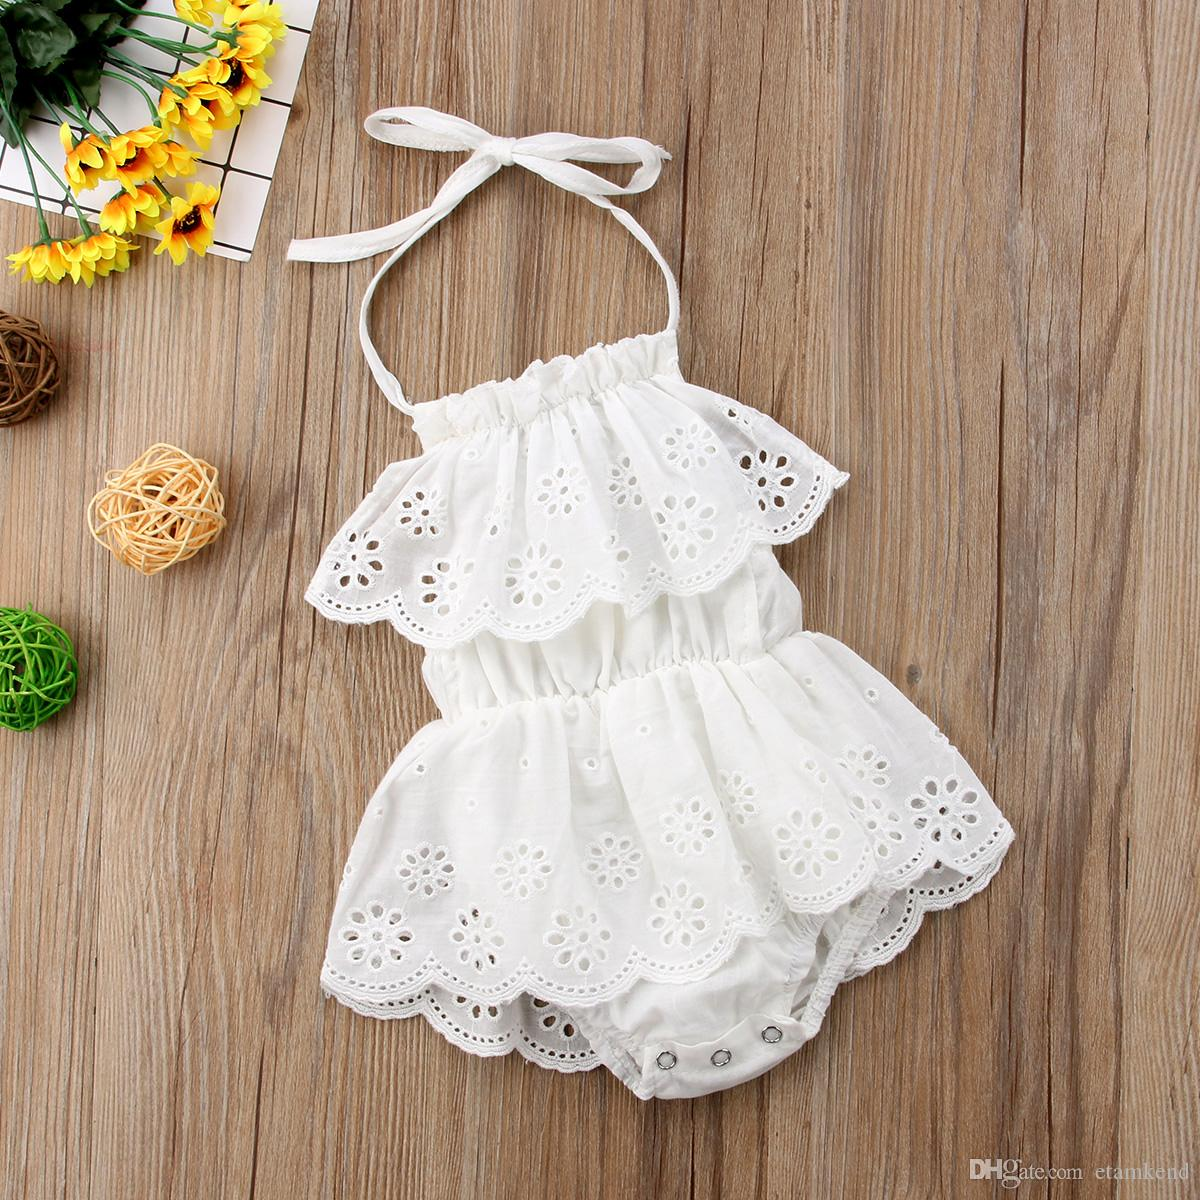 3820beba6f159 2019 new fashion Pudcoco Cute Newborn Kids Baby Girl Infant Lace Romper  Dress Jumpsuit Playsuit Clothes Outfits